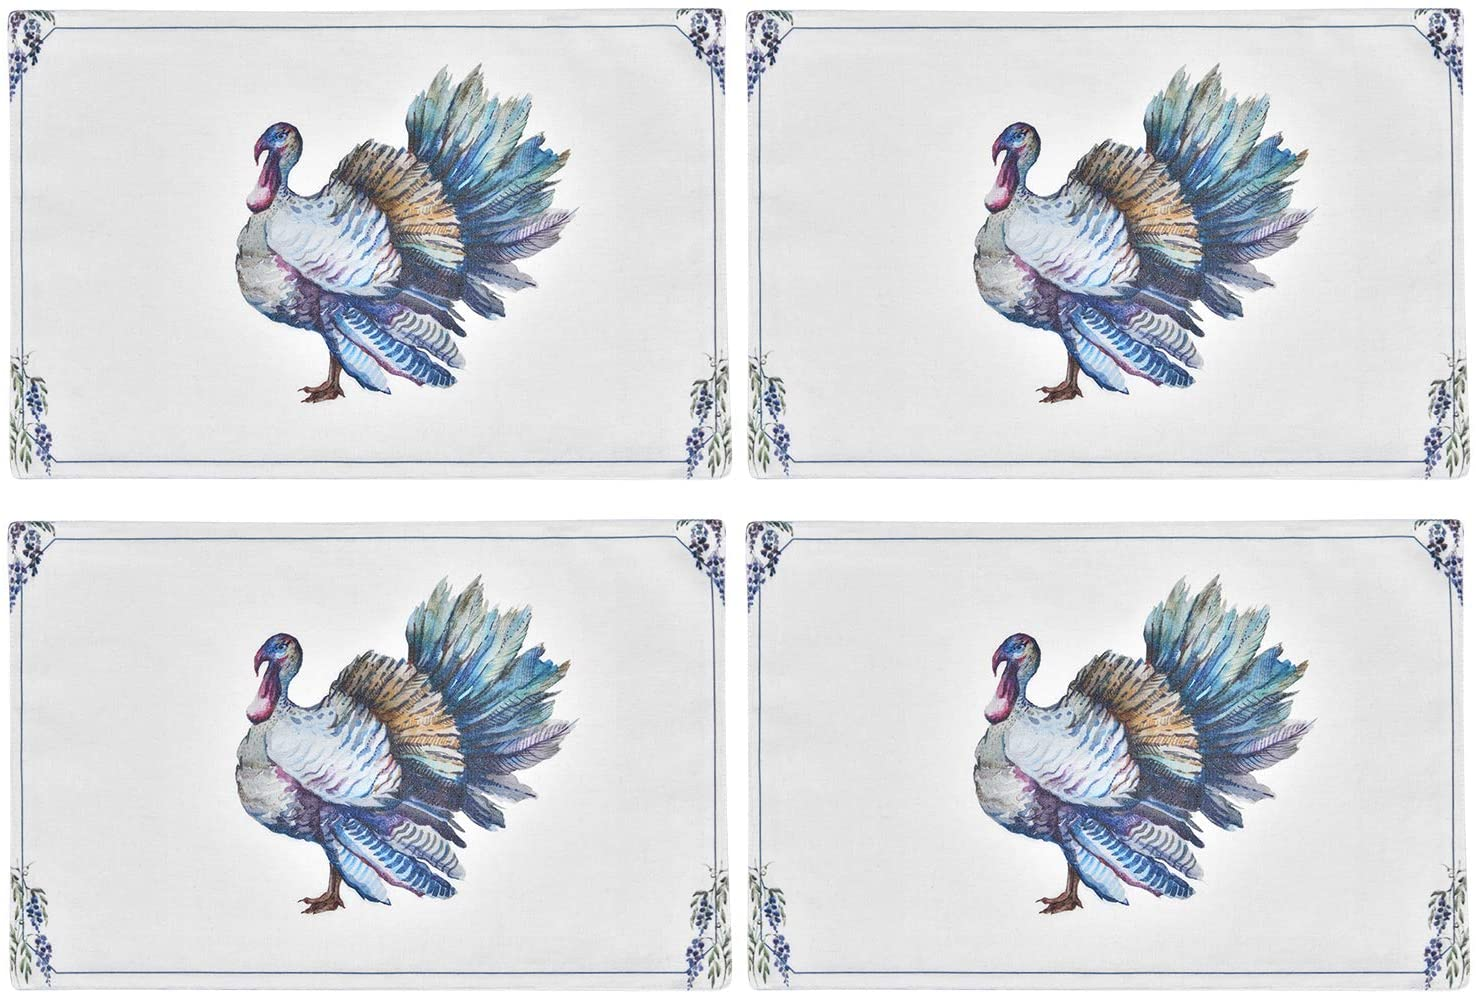 Sunlightfree Set of 4 Placemats Thanksgiving Turkey Heat-Resistant Washable Table Place Mats Cotton Linen Rectangular Placemats for Kitchen Dining Table, White, 18 x 12 Inches